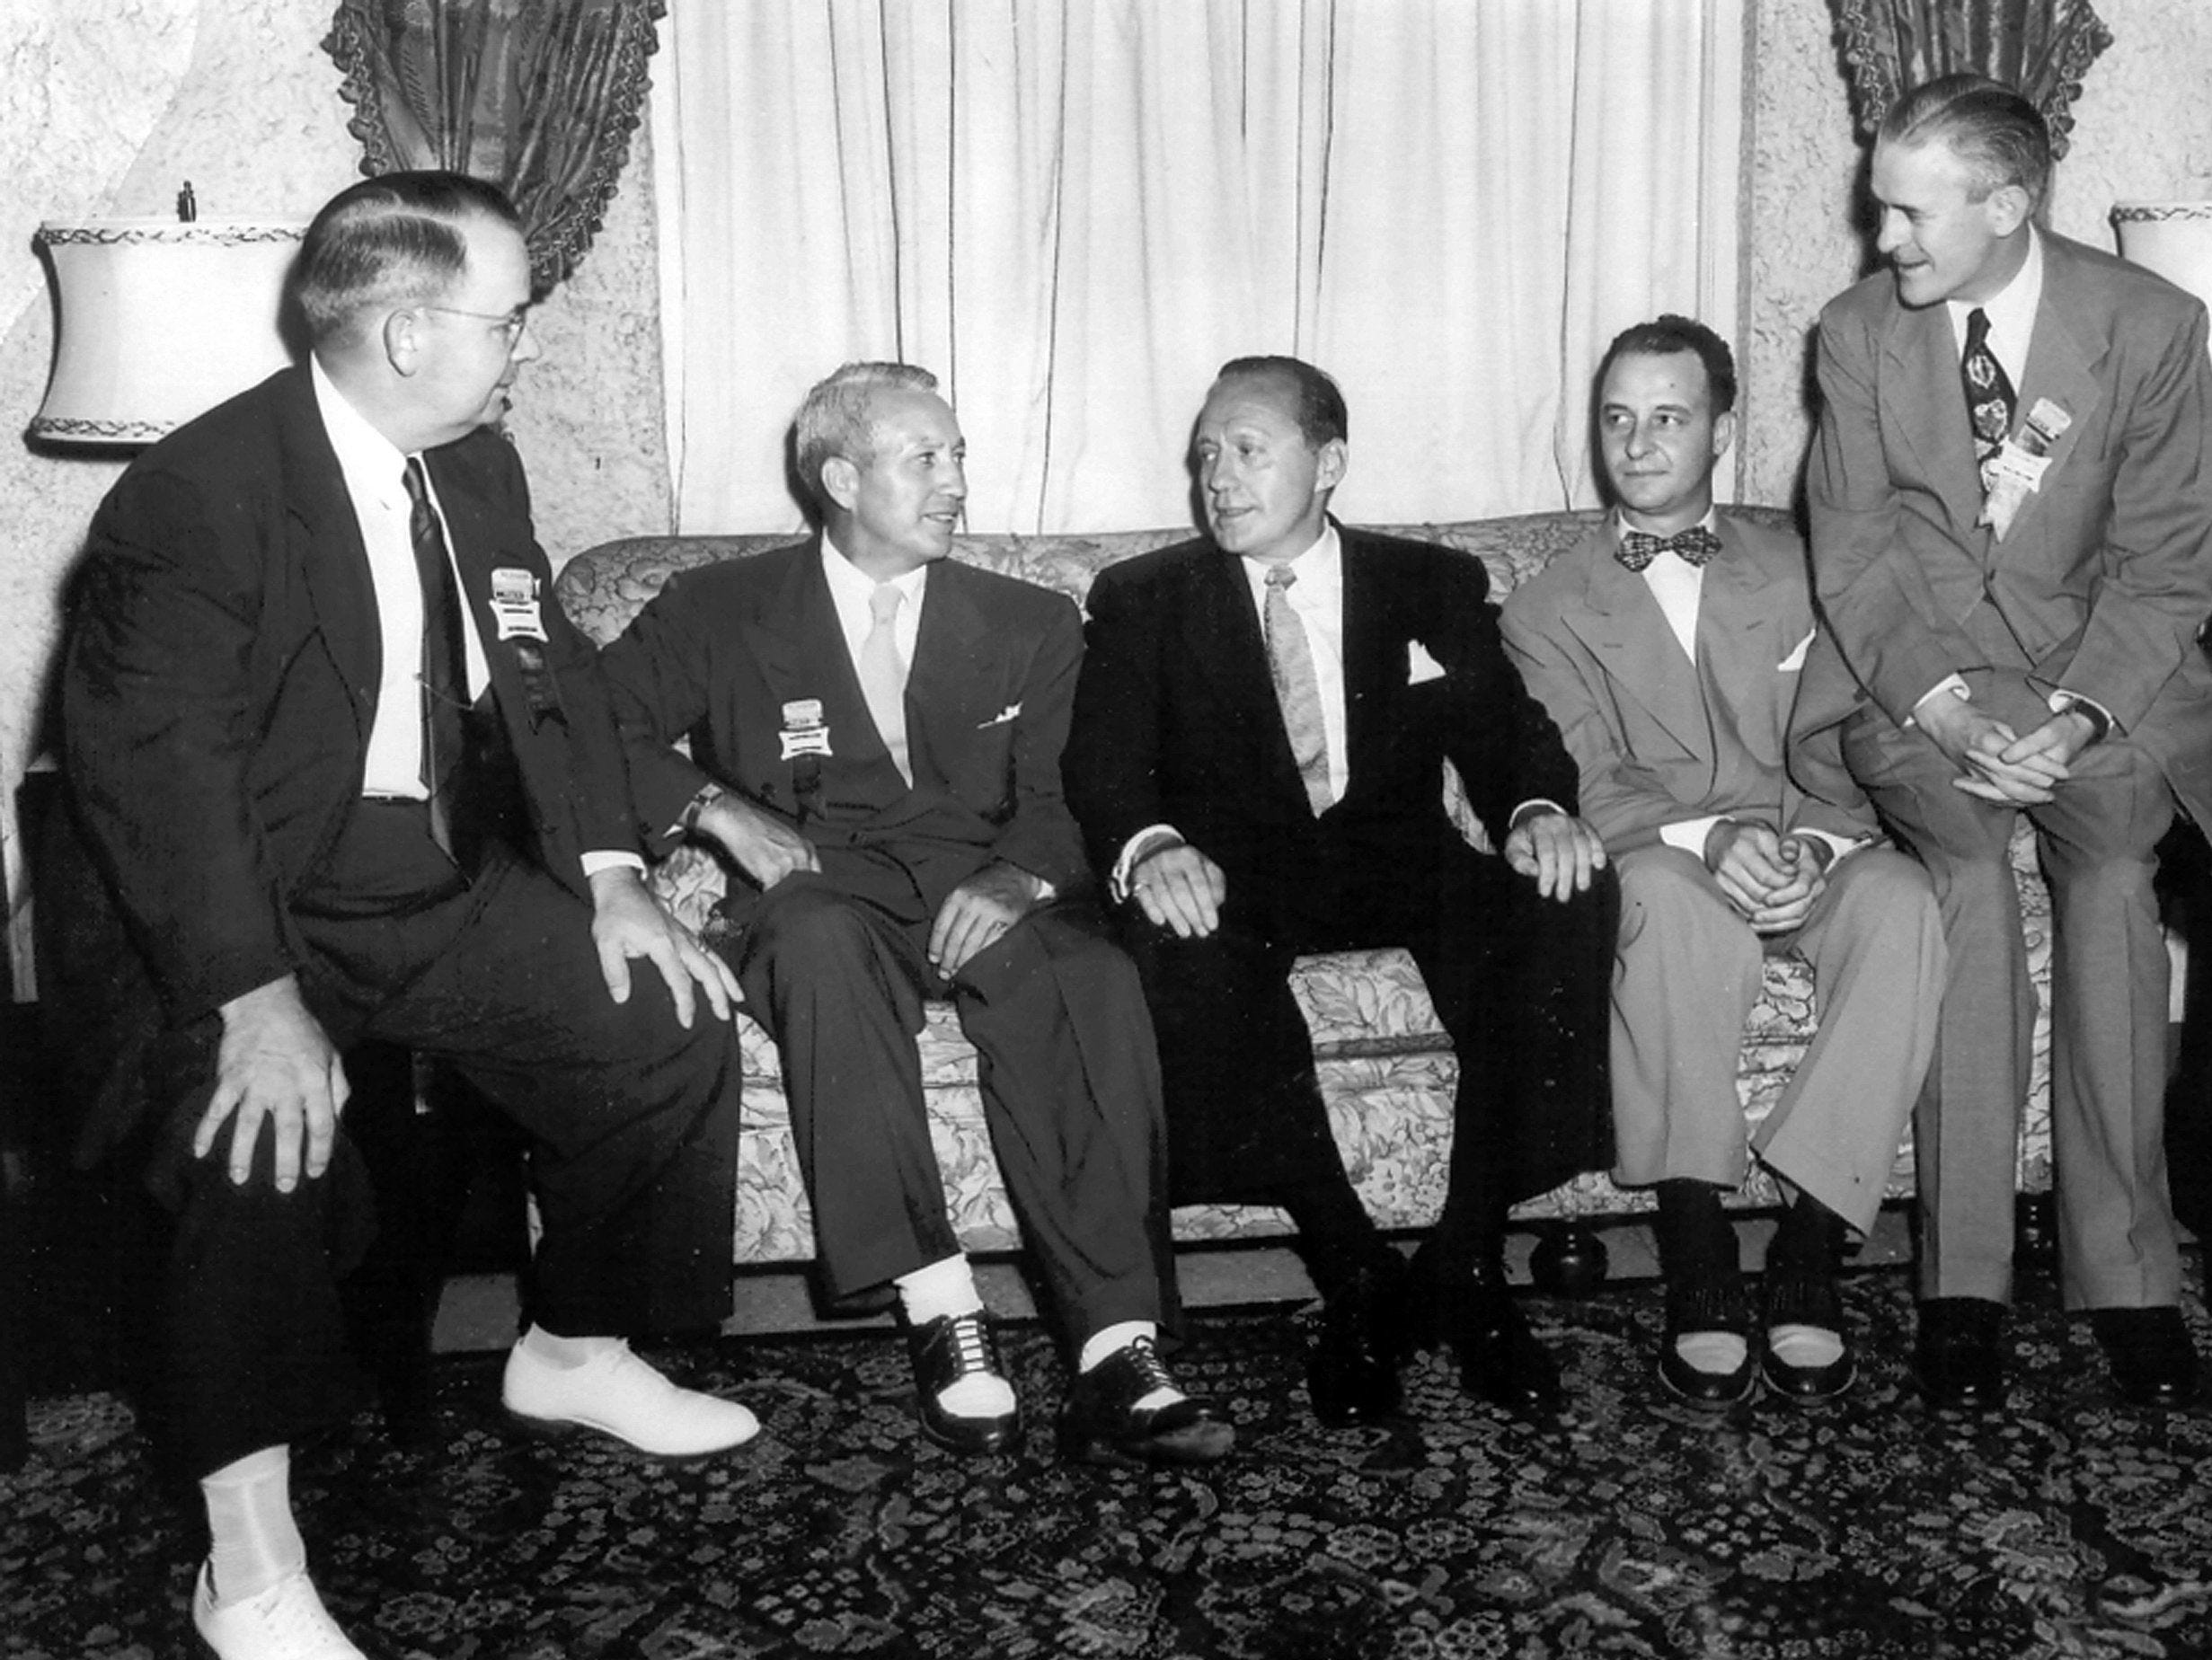 Comedian Jack Benny, center, visits with executives of Plough, Inc. on June 23, 1951. Lanny Smith is at left and F.J. ?Sonny? Condon is at right. The other two men are unidentified. Benny was in town for the grand opening of Plough?s new offices at 3022 Jackson Ave.and to perform at a benefit for service men and veterans. Benny laughed Memphians out of approximately $28,000 at Ellis Auditorium before taking his troupe to Korea to entertain service men the following week. Benefits from the sale of tickets to the show were to be divided among Veterans Hospital 88 and Kennedy Veterans Hospital, the Memphis Auxiliary of Navy Relief and the Memphis Mothers? Canteen.